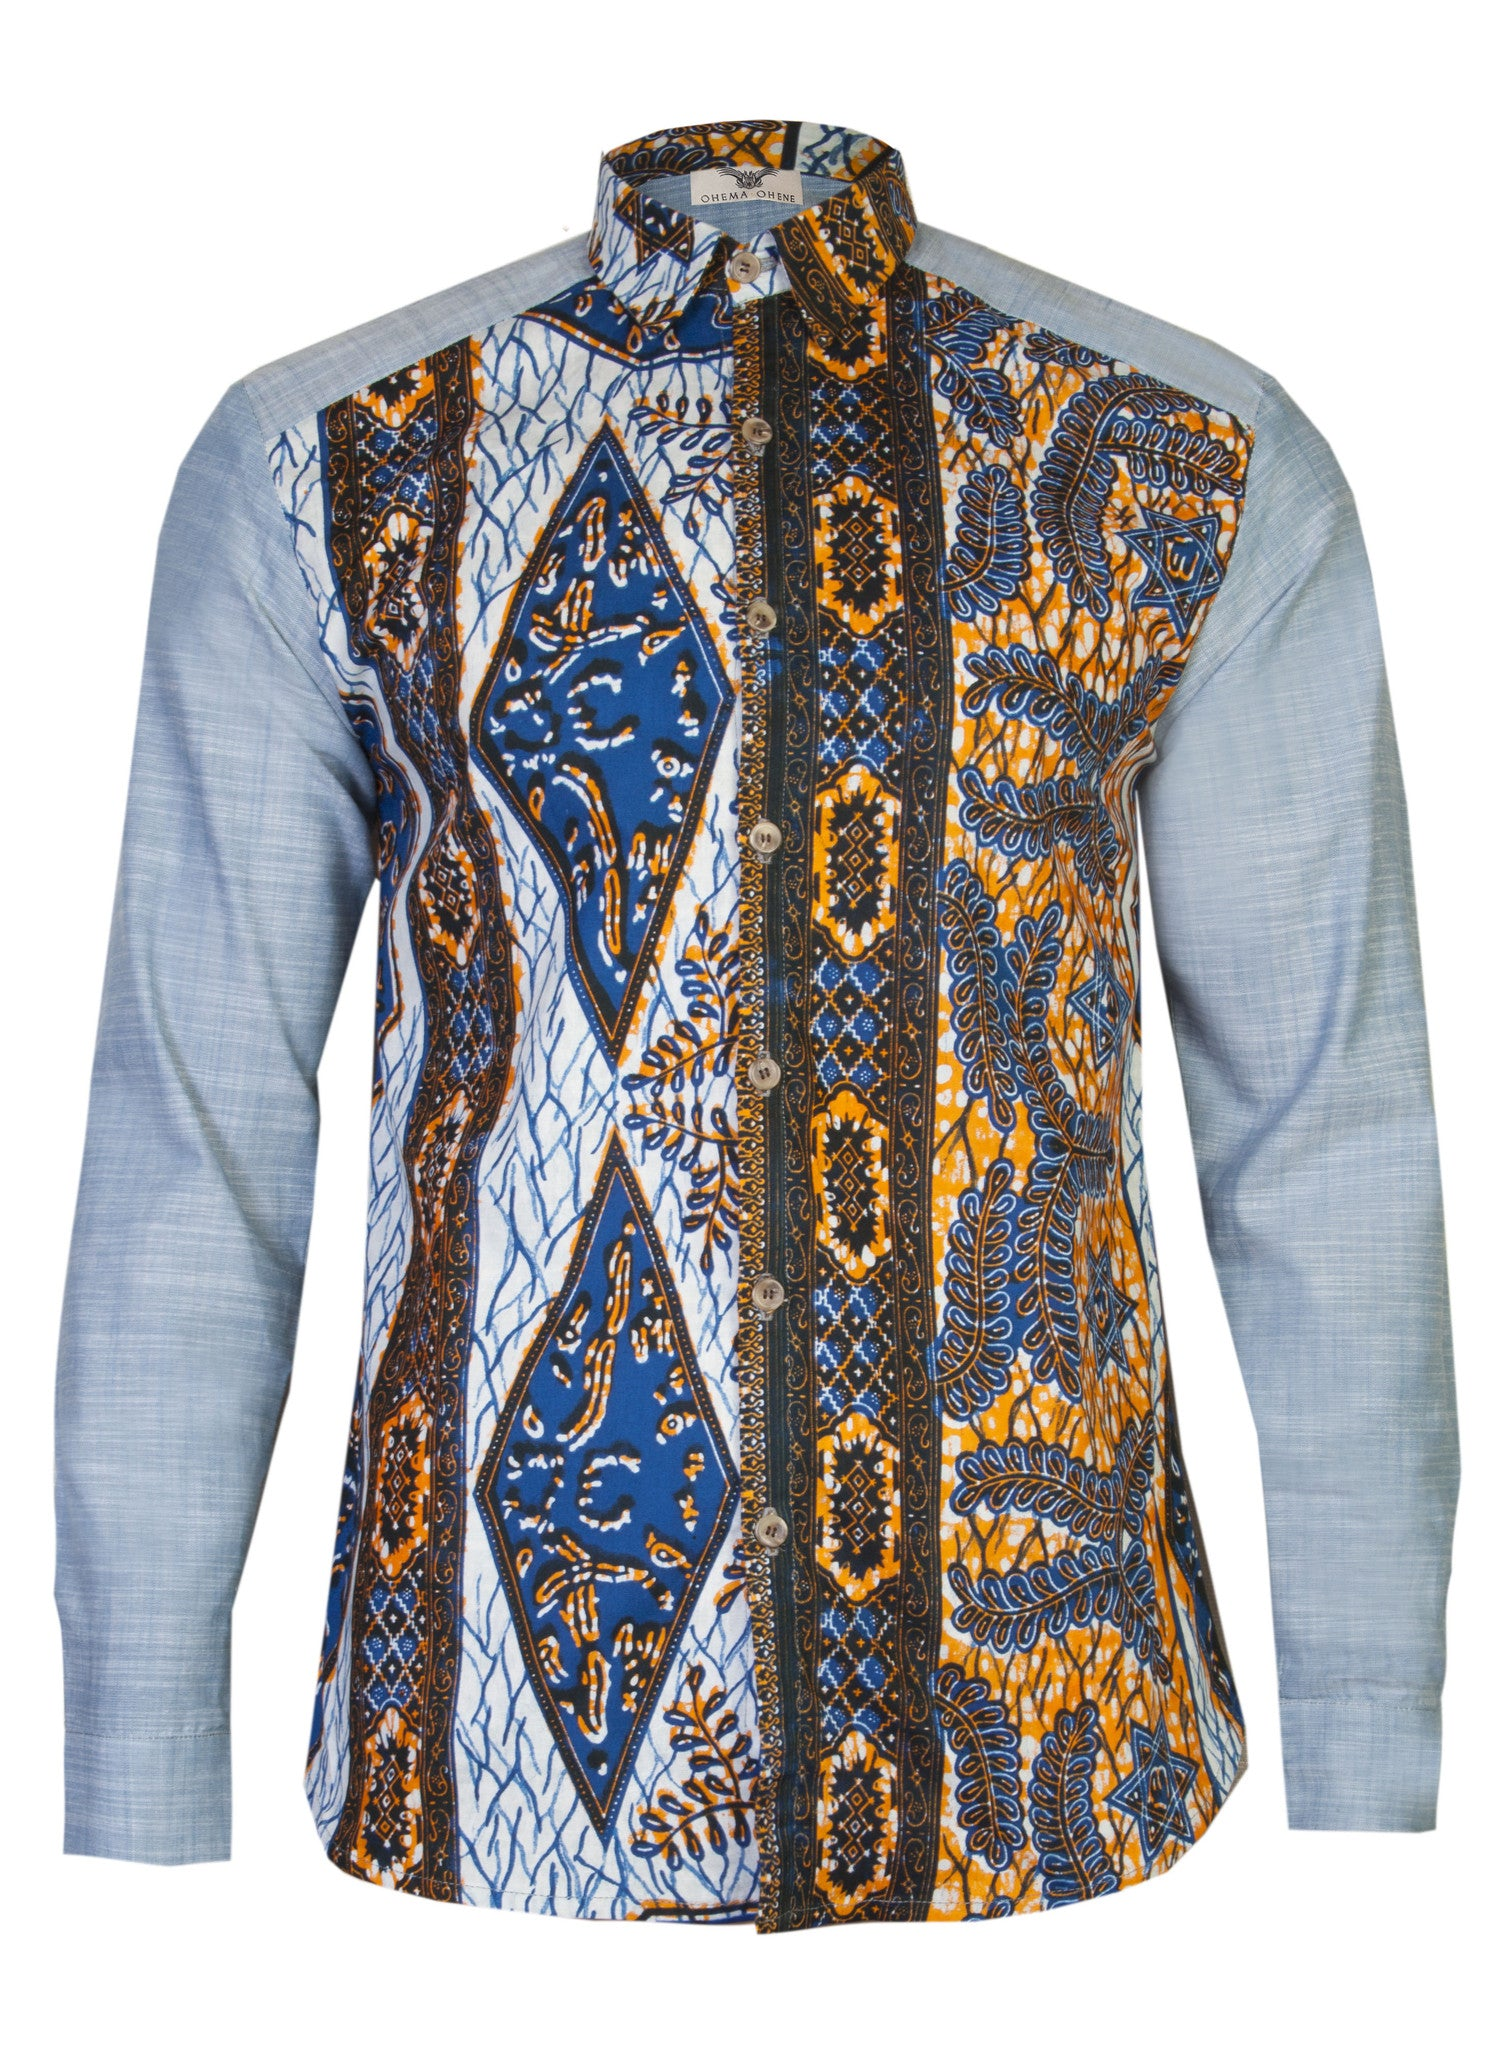 Men's Denim African print shirt 'Bethlehem' - OHEMA OHENE AFRICAN INSPIRED FASHION  - 1